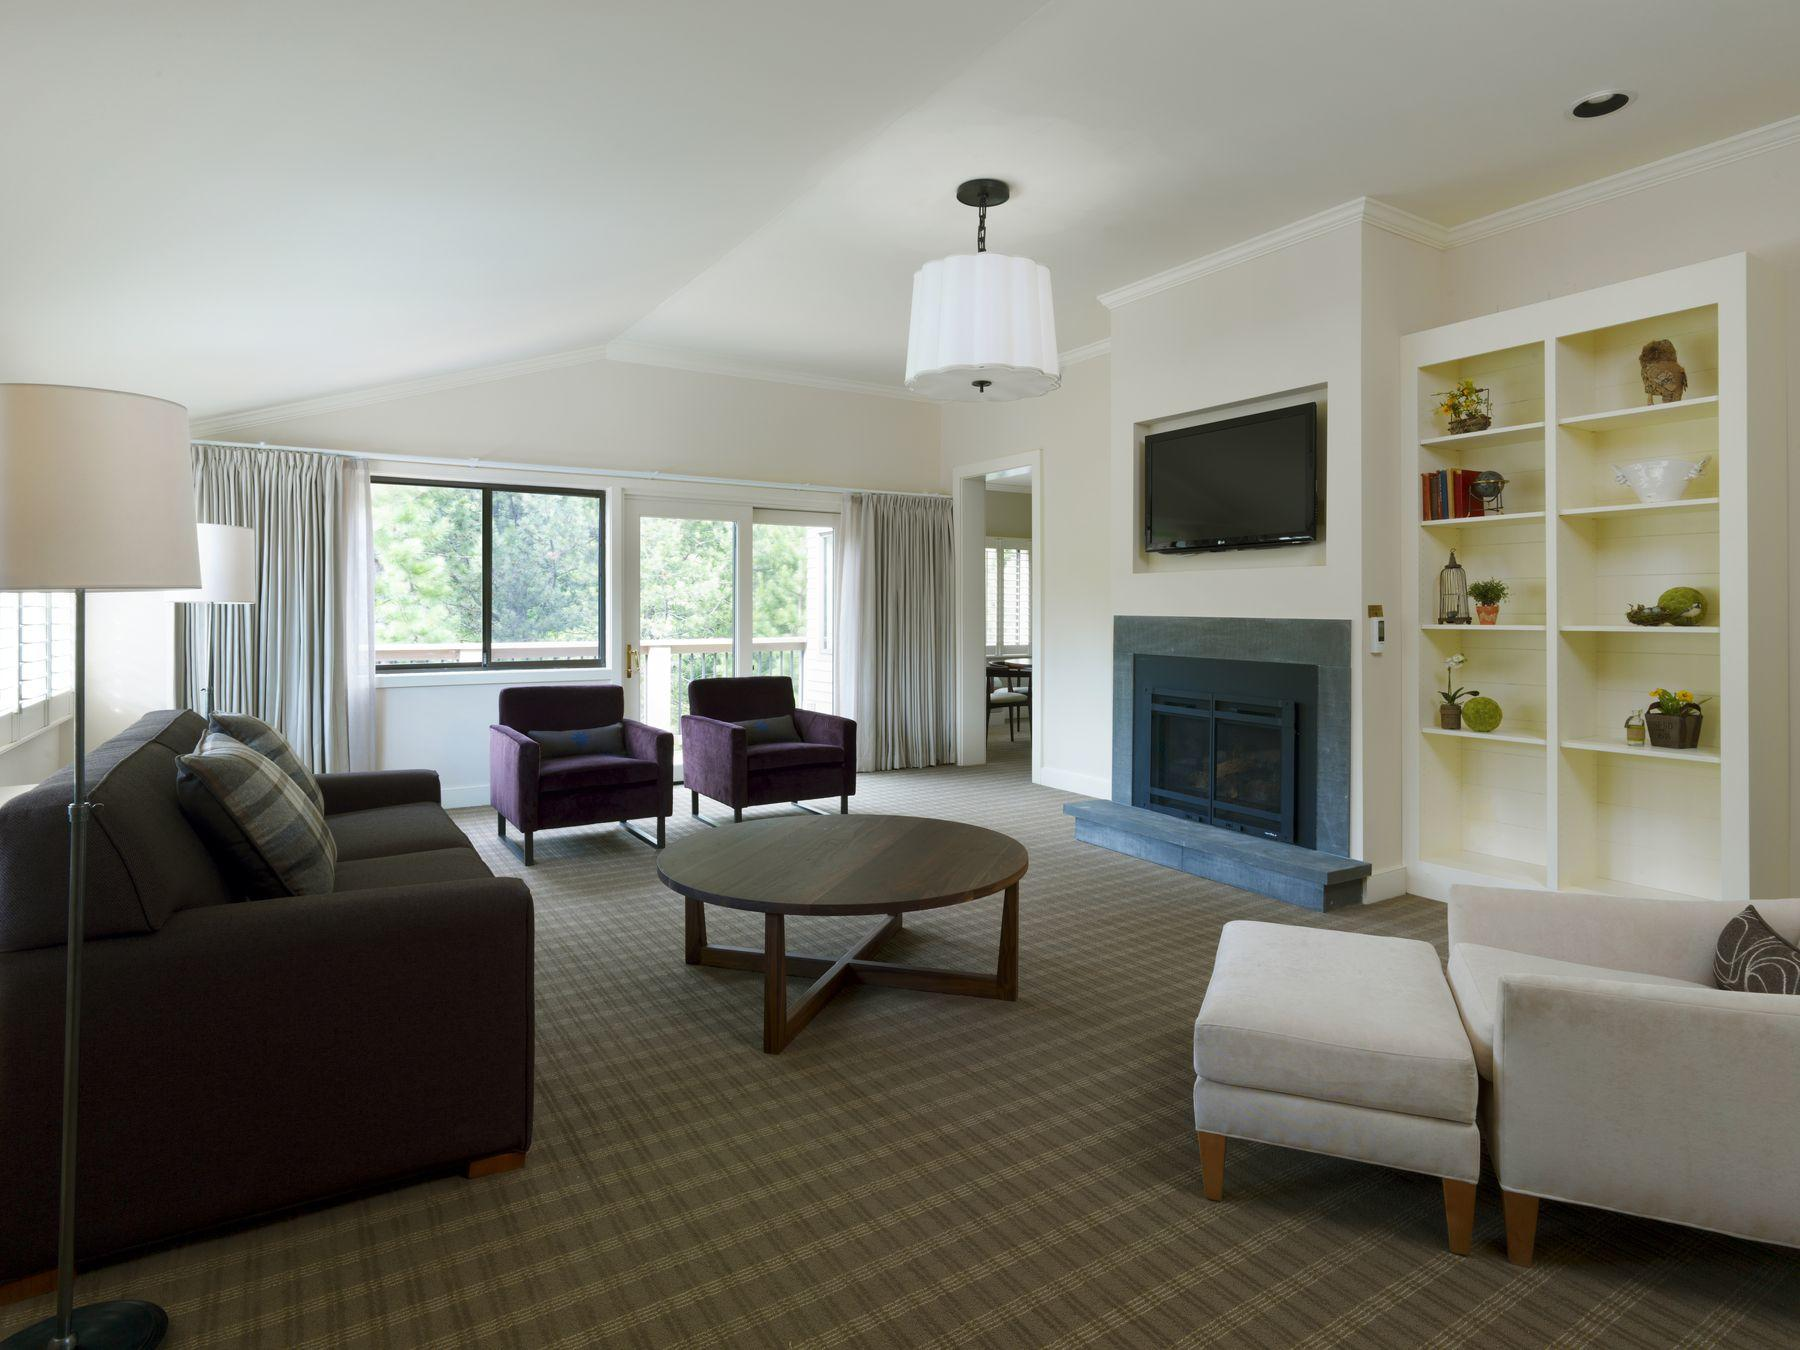 Broad living space of hotel suite